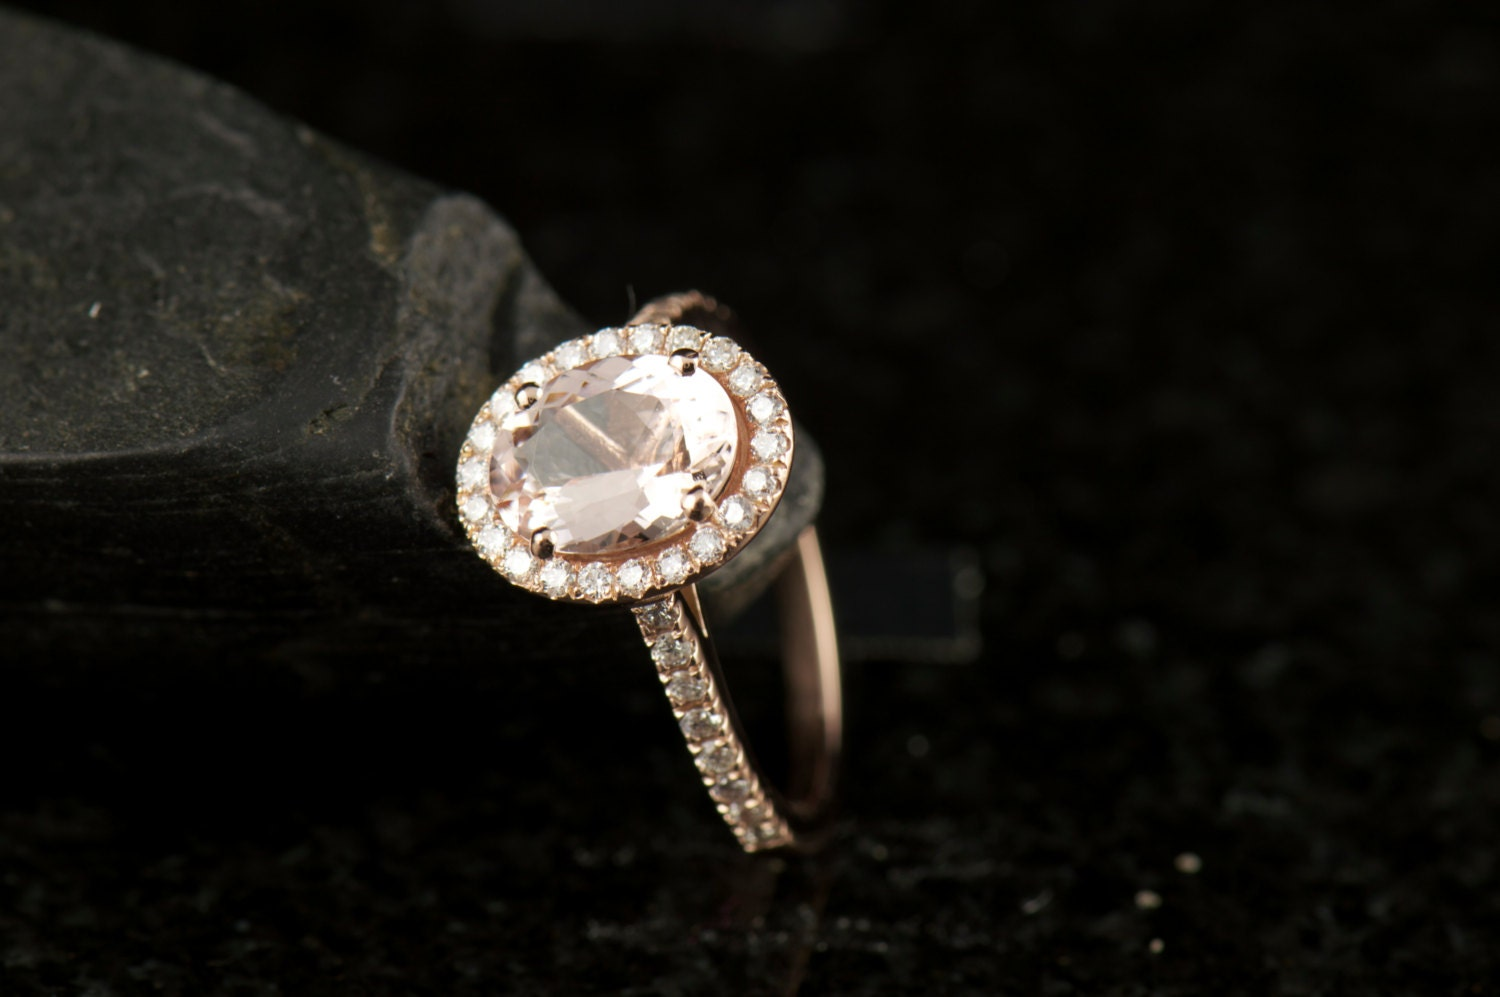 Oval Morganite Engagement Ring in 14k Rose Gold, 8x6mm 1.52ct Morganite, 0.33ctw E-F Color VS Clarity Diamonds, 1.75mm Band, Maria